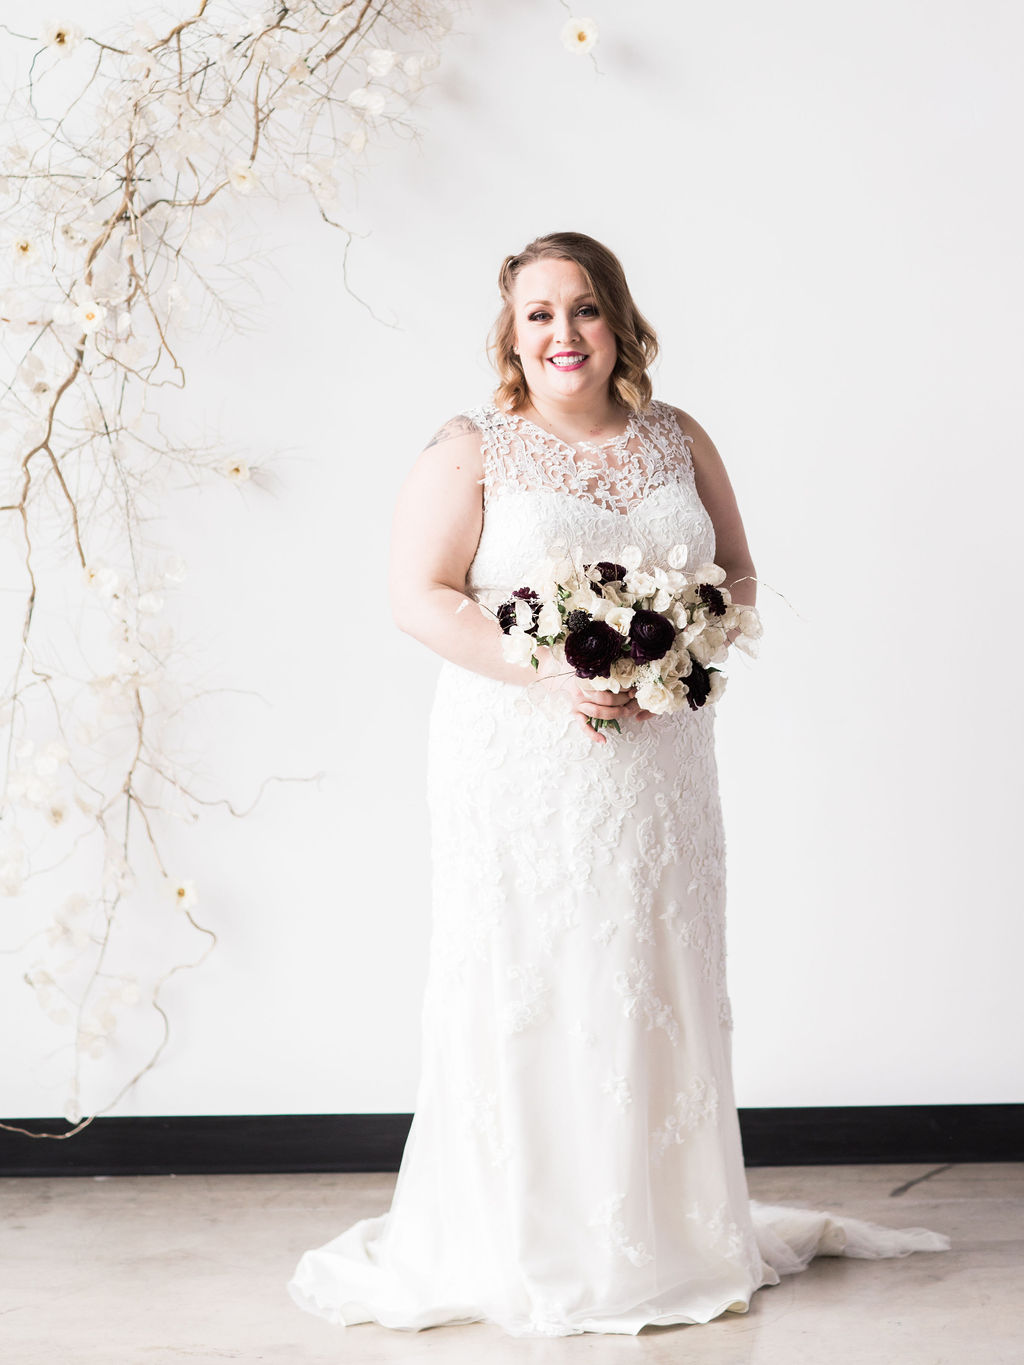 Plus size bride wedding dress bride